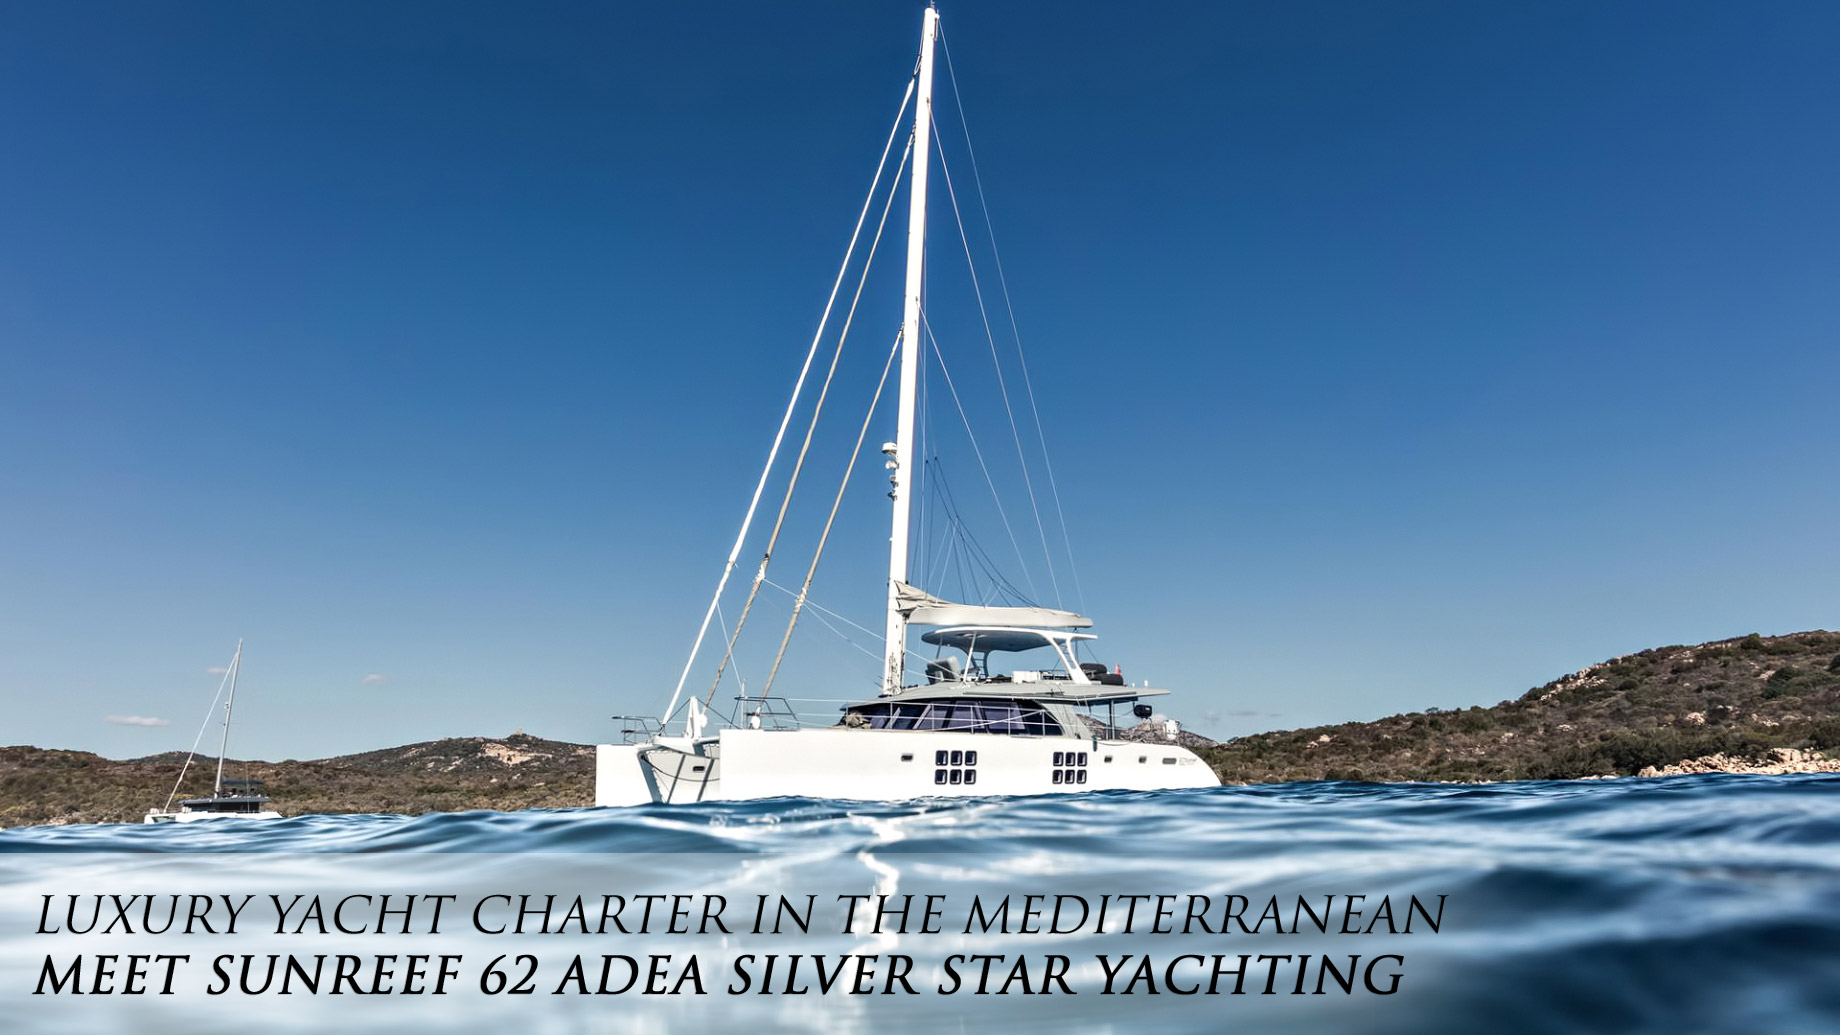 Luxury Yacht Charter in the Mediterranean - Meet Sunreef 62 ADEA Silver Star Yachting